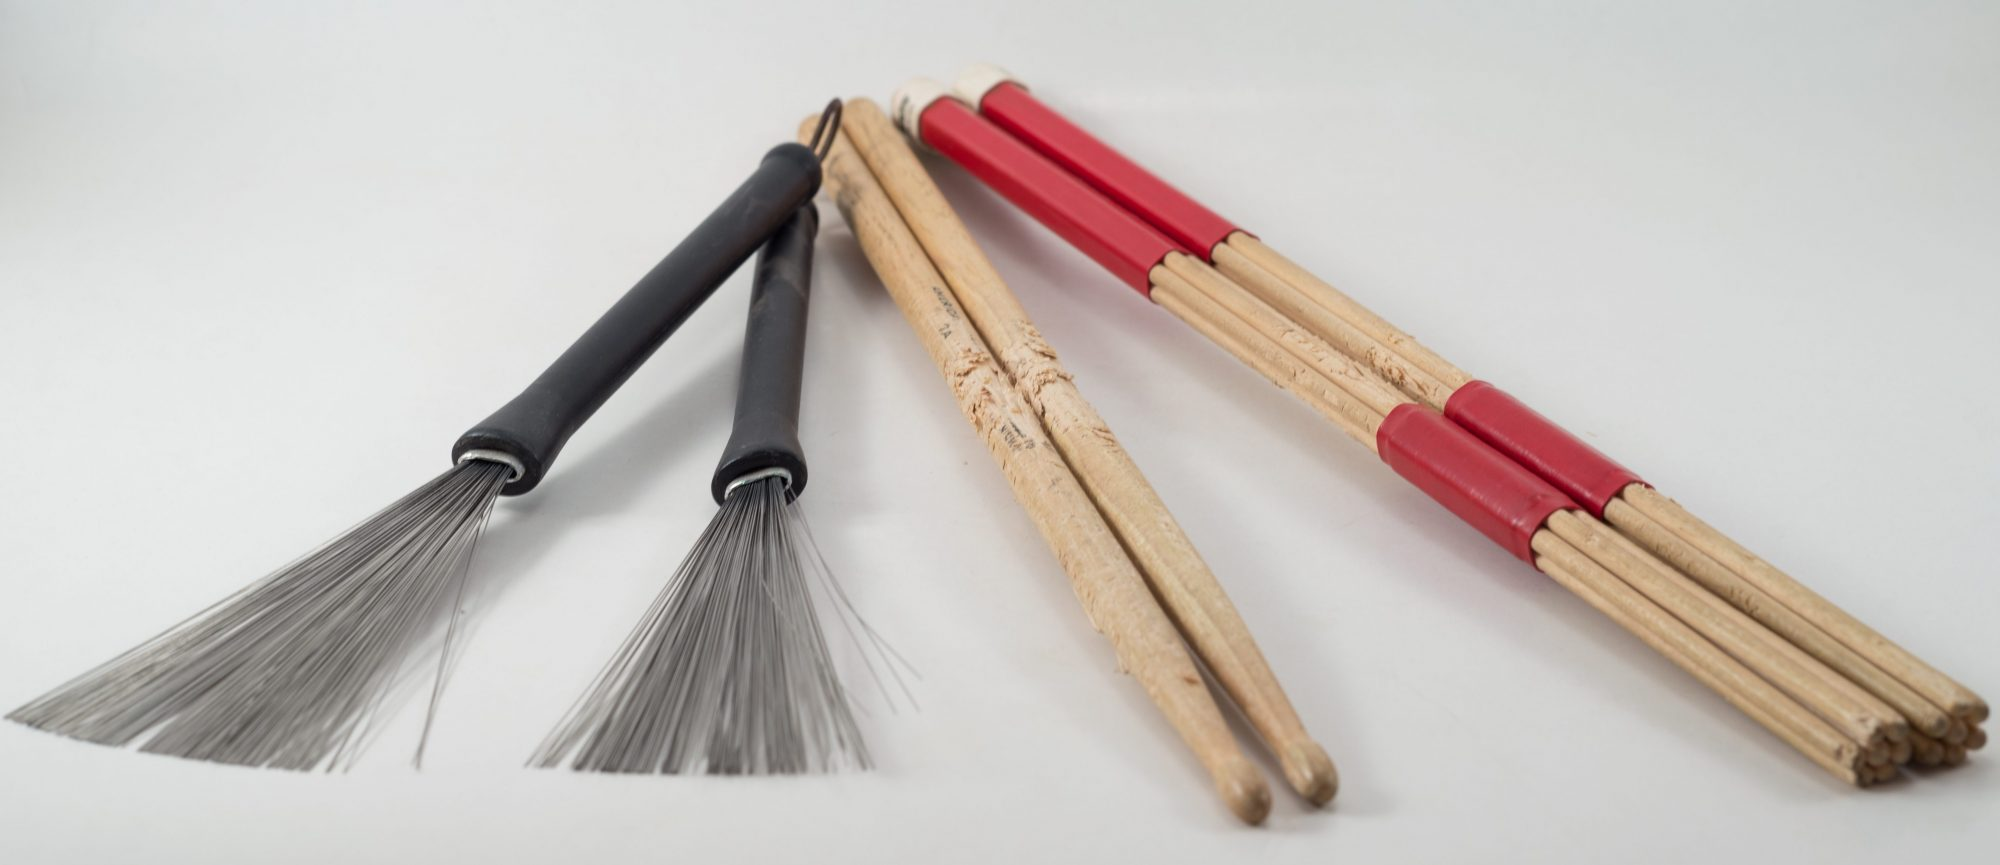 Everything You Need To Know About Drum Brushes - Andertons Blog